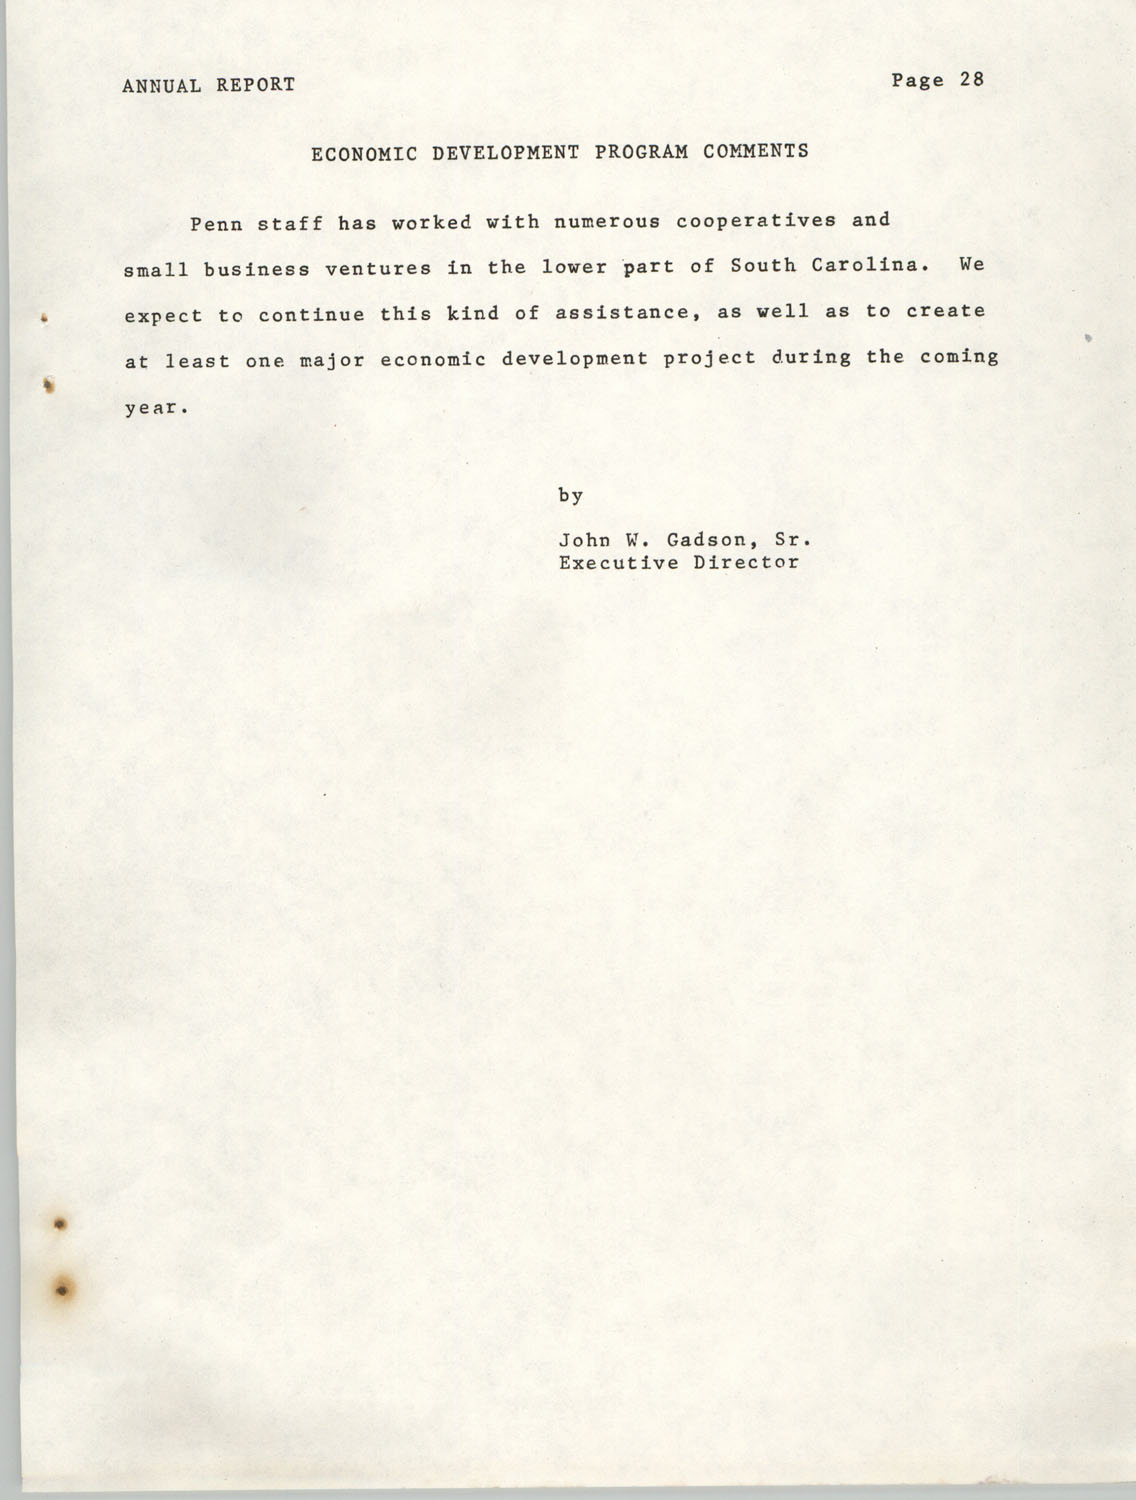 Annual Report, Penn Community Services, 1974, Page 28